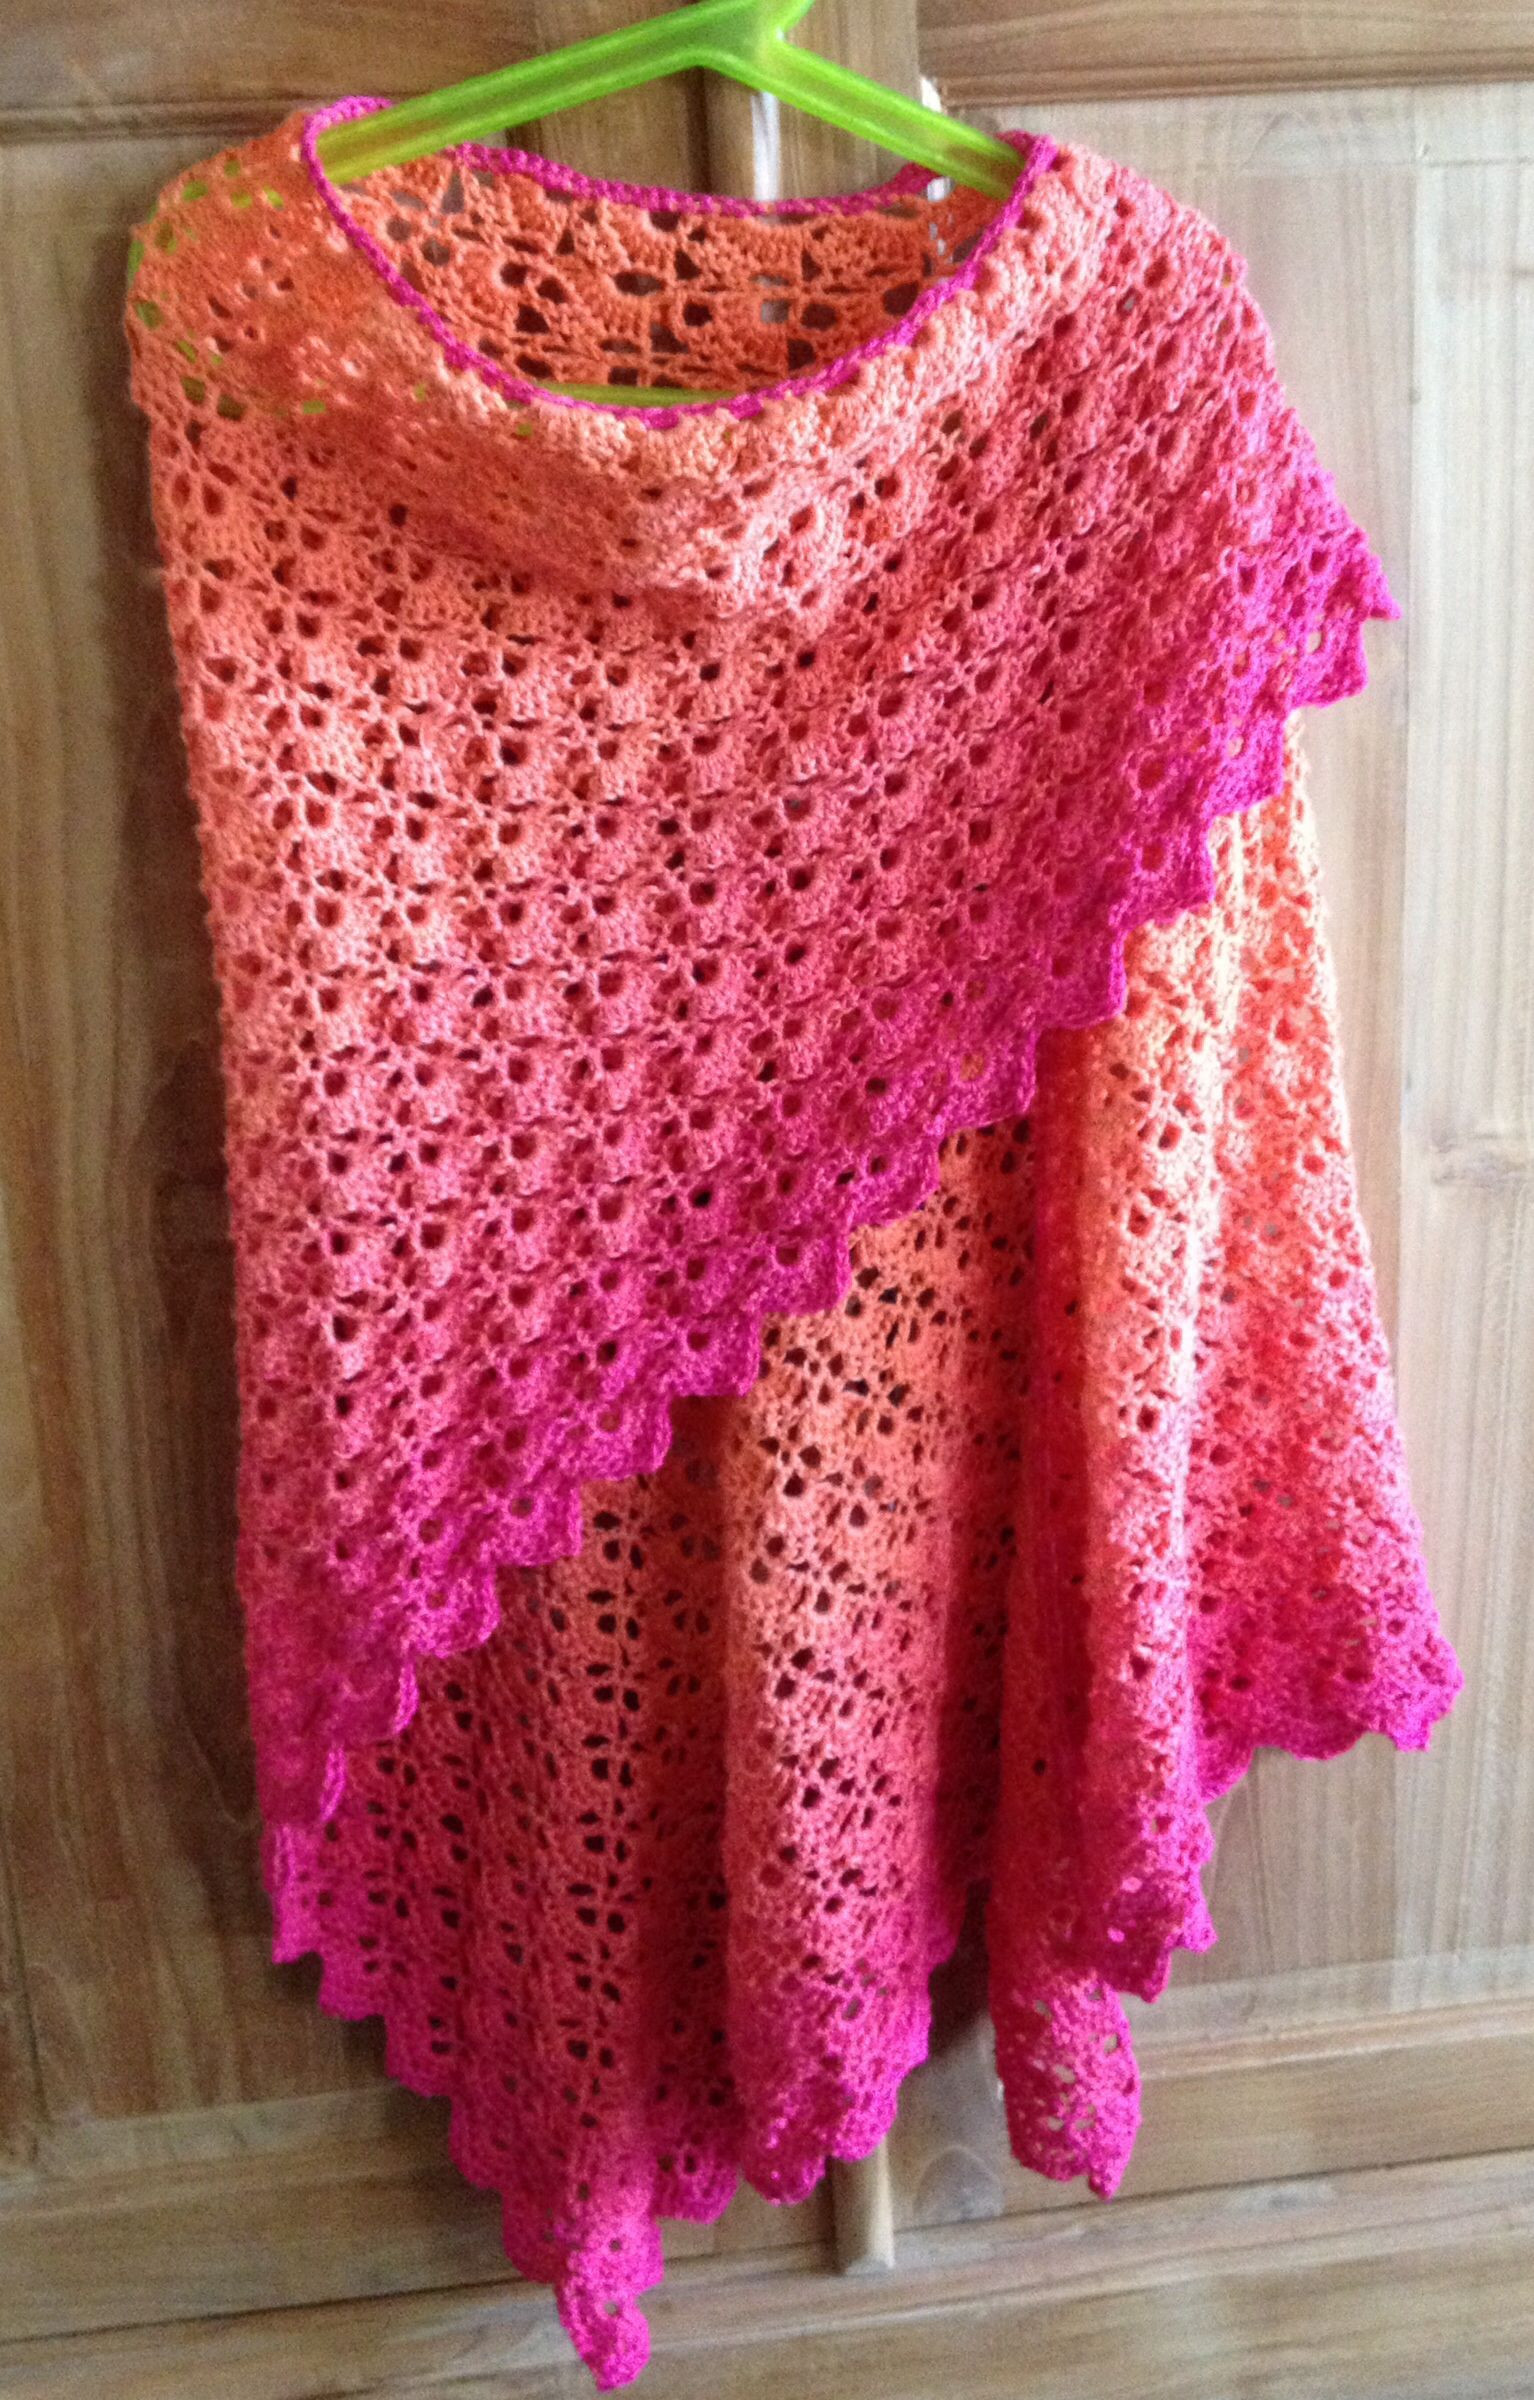 Fresh I Am totally In Love with the Ombre Look Of This Free Free Crochet Wrap Patterns Of Elegant Crochet Shawl Pattern Crochet Wrap with Pineapple Motif Free Crochet Wrap Patterns